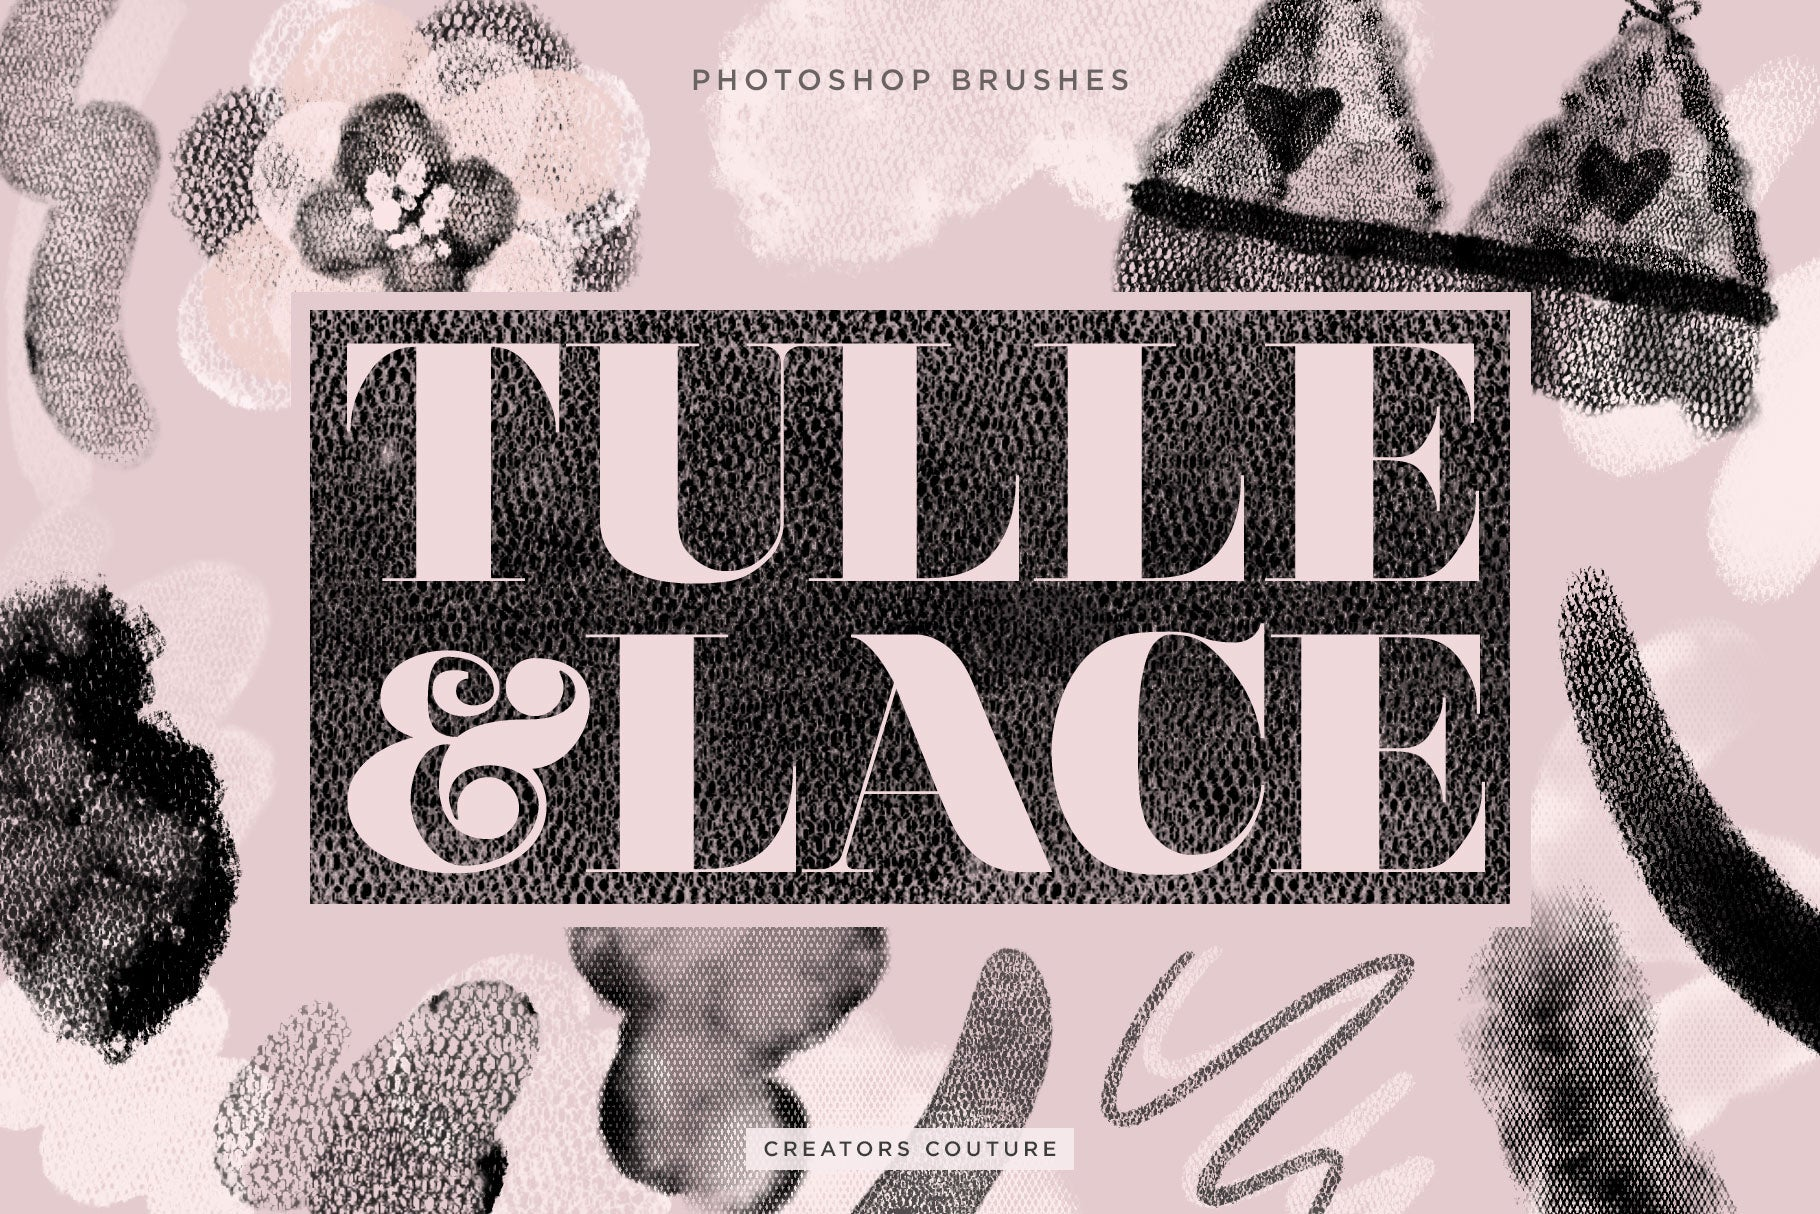 Artistic Tulle and Lace Fashion Inspired Photoshop Brushes Cover image